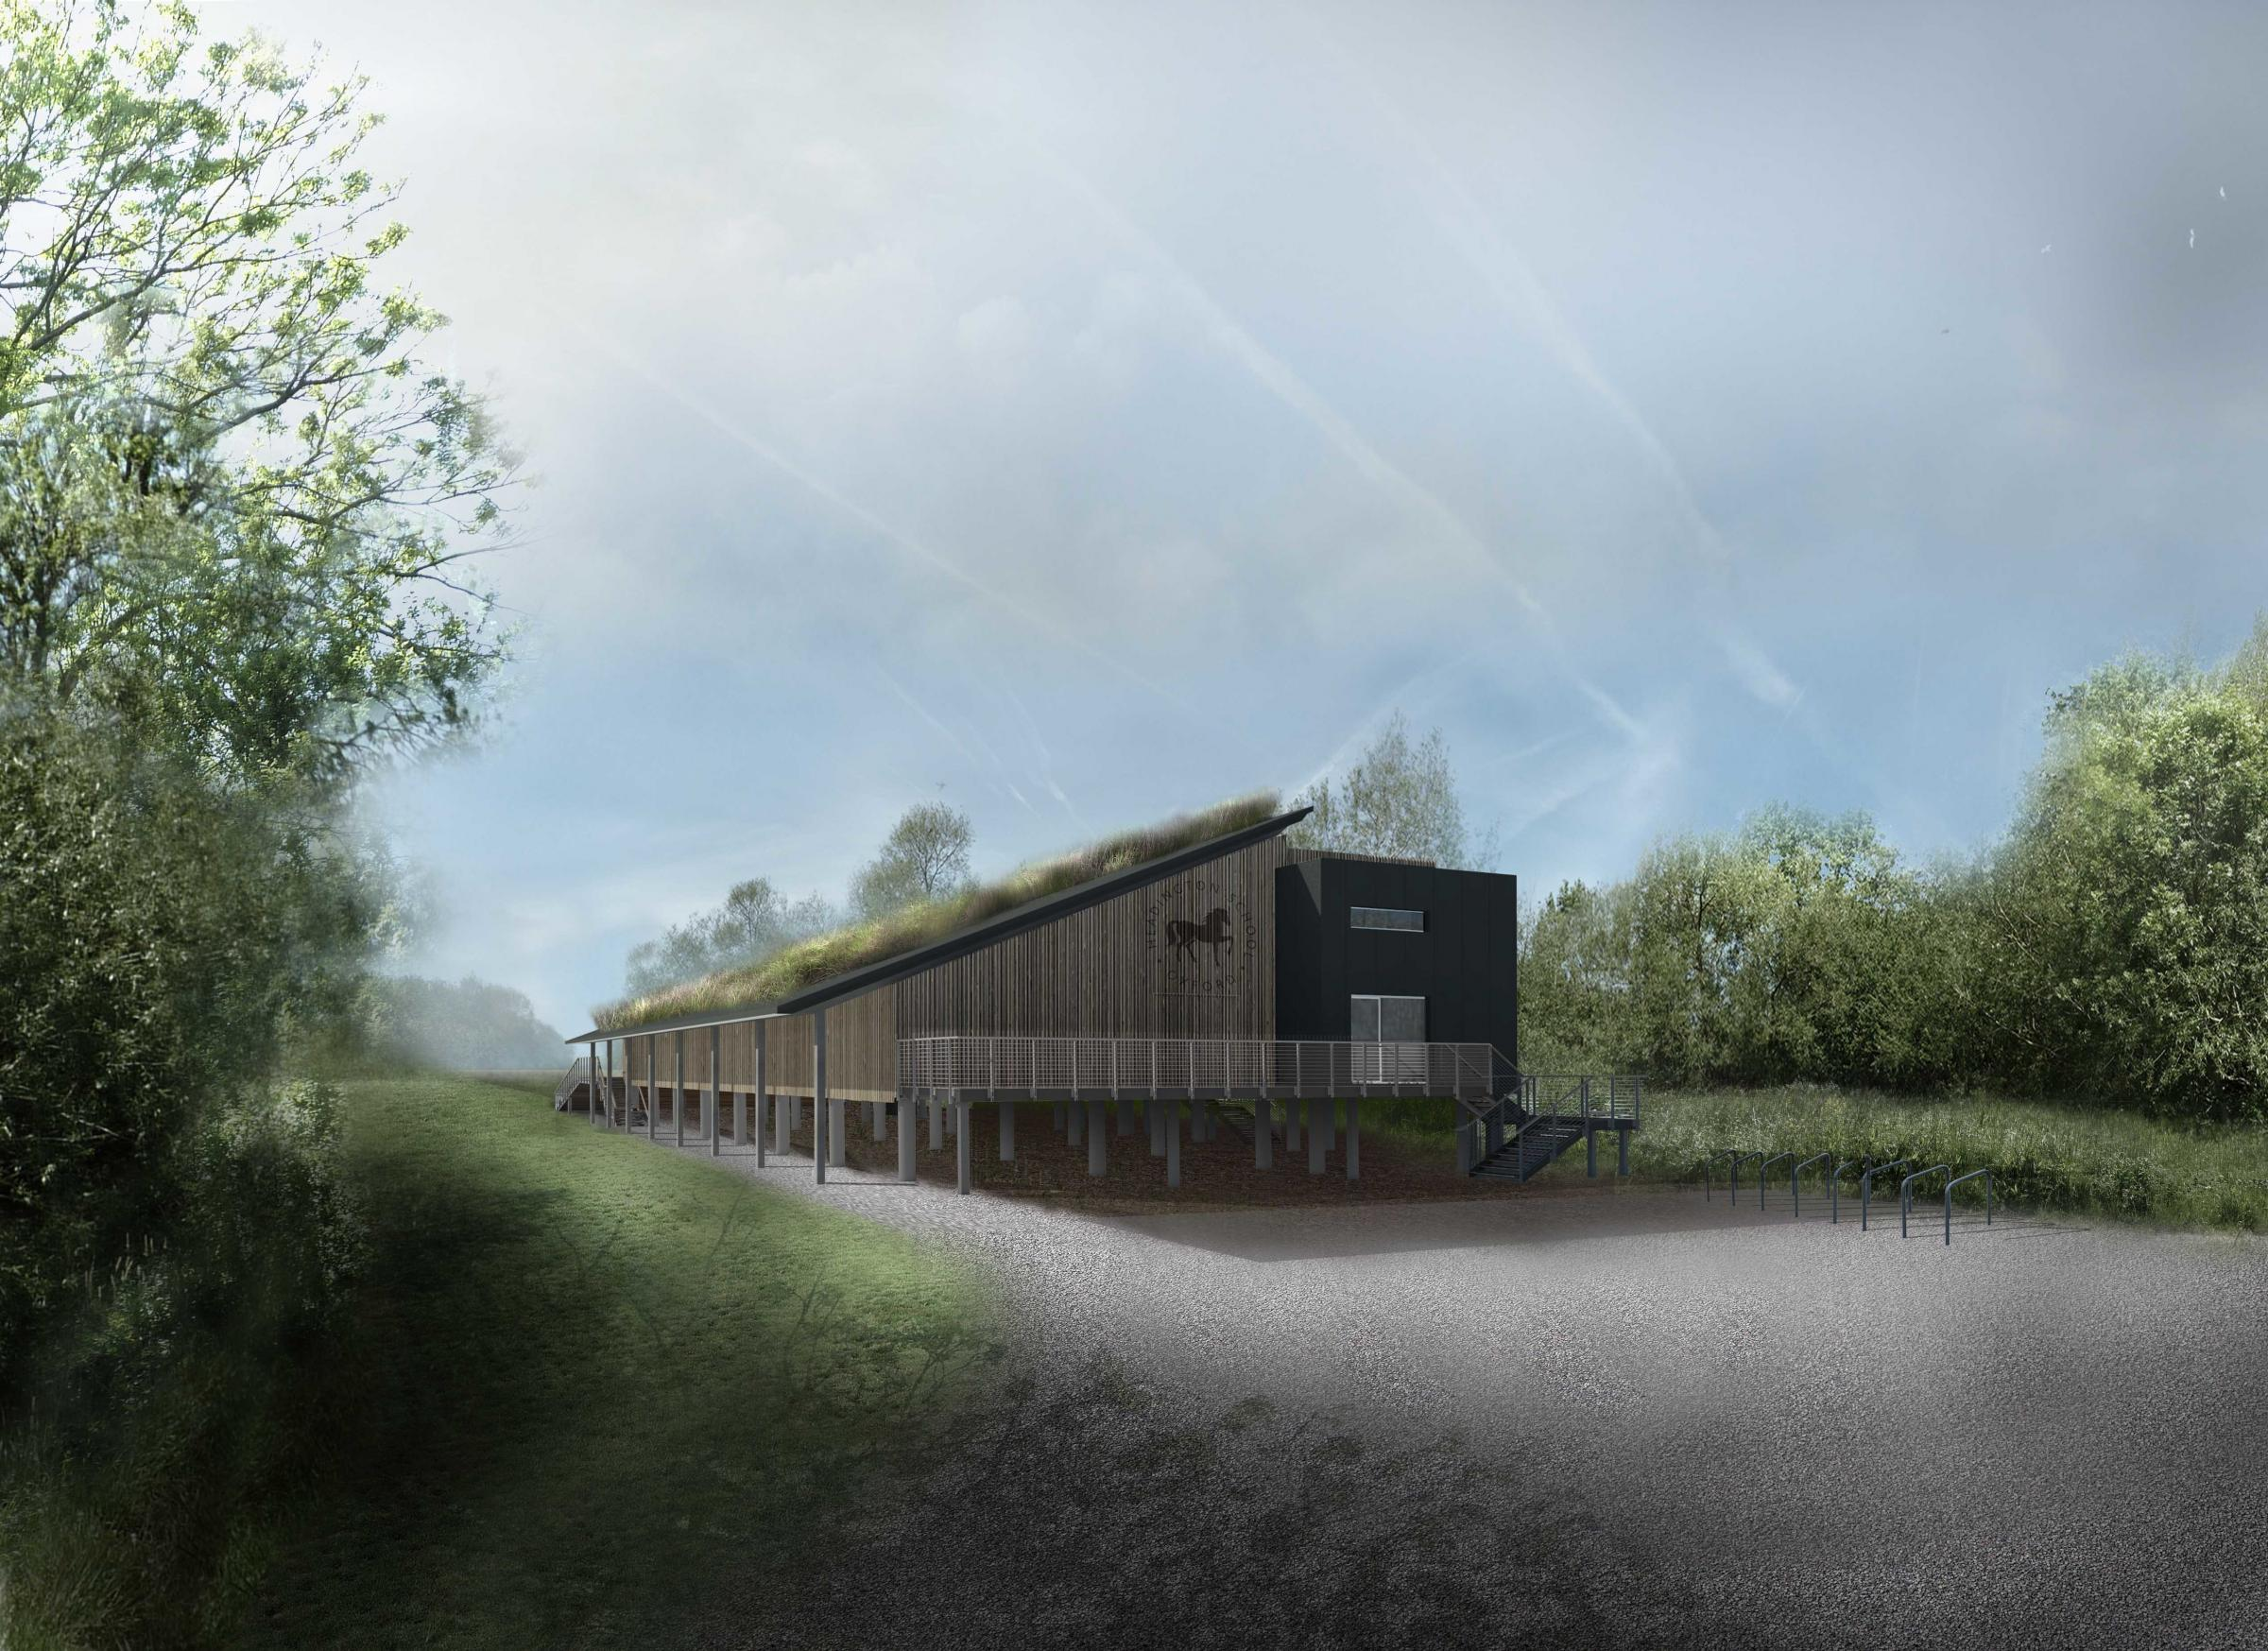 Headington School to build its first ever boathouse in Long Wittenham